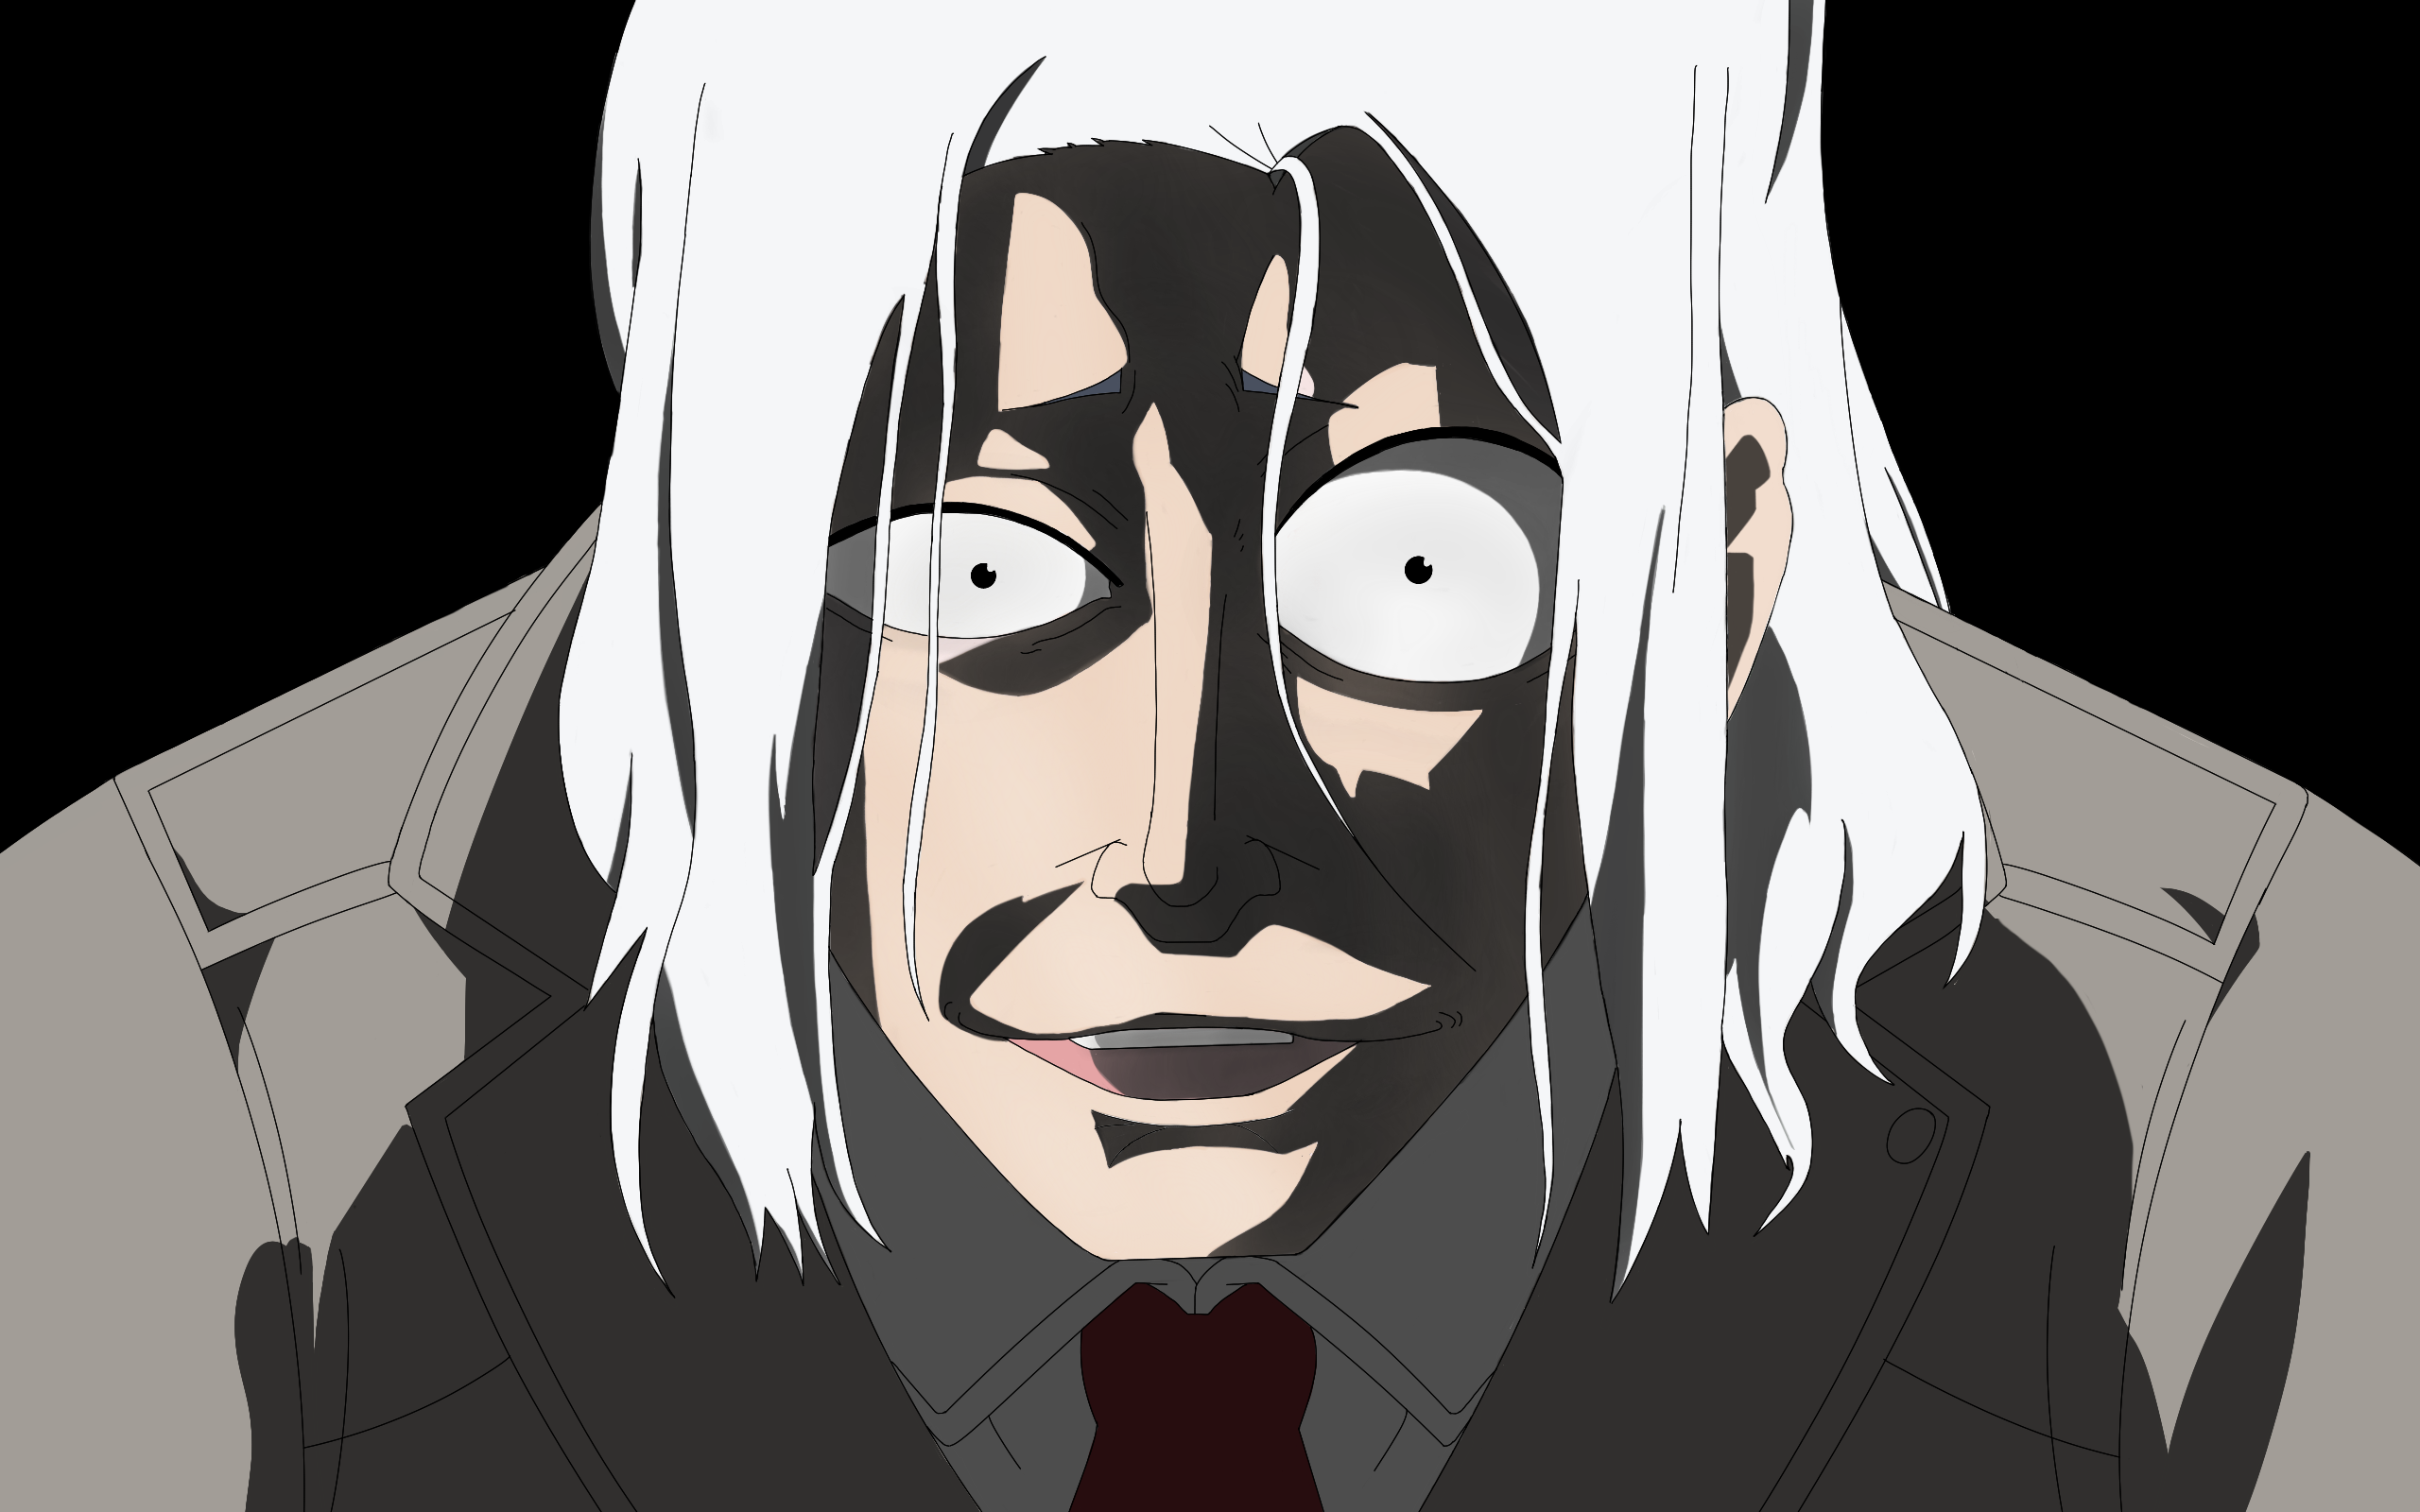 Mado from Tokyo Ghoul